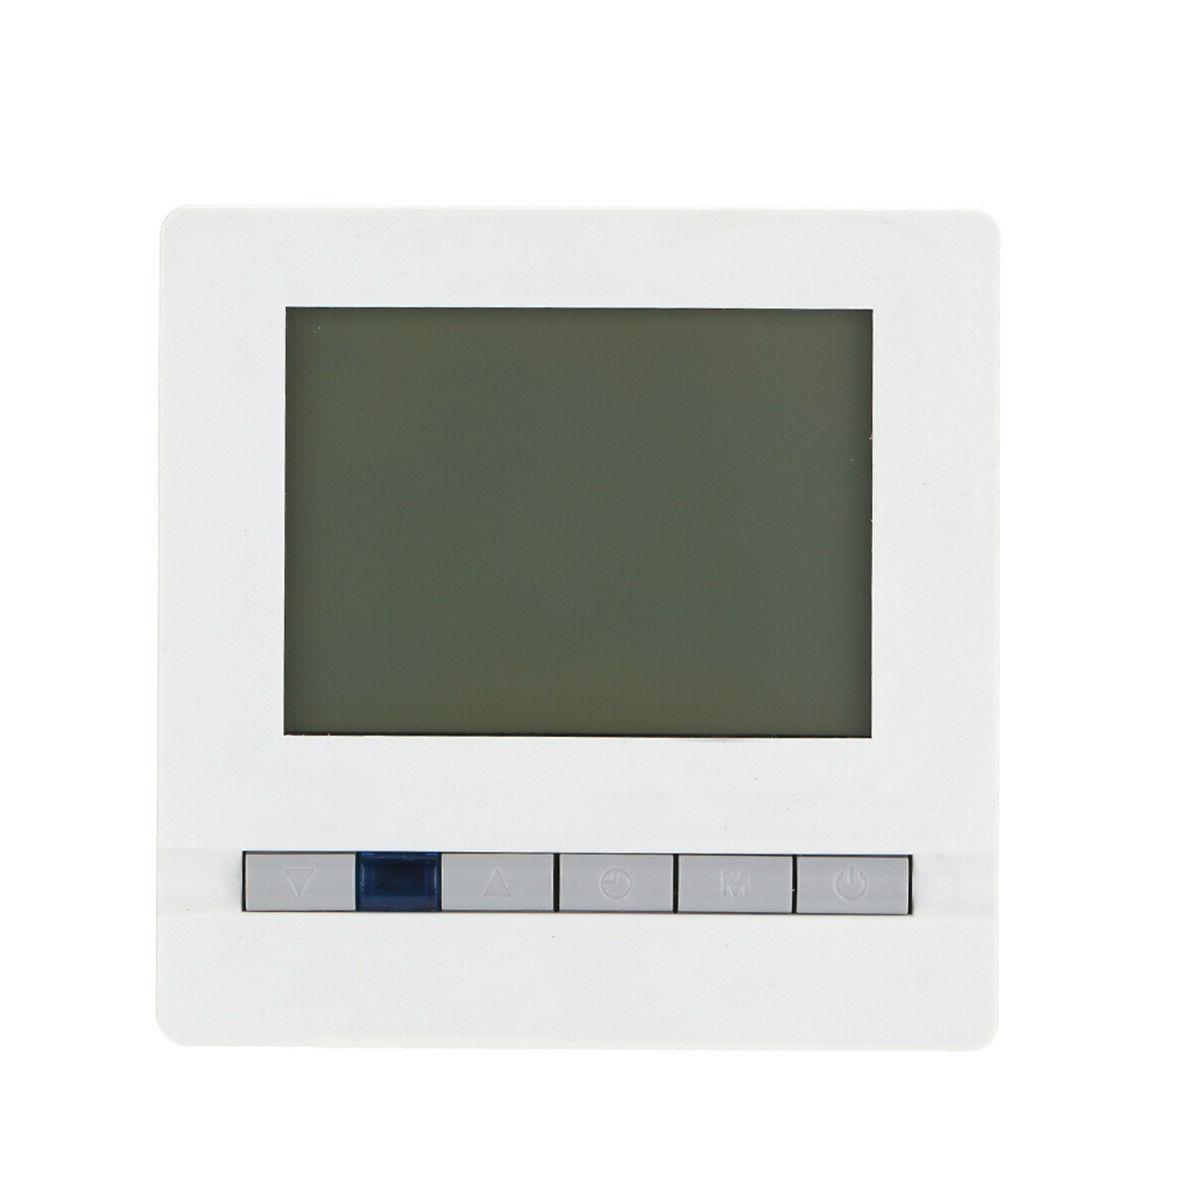 1PC Remote Control Heating Thermostat for Home